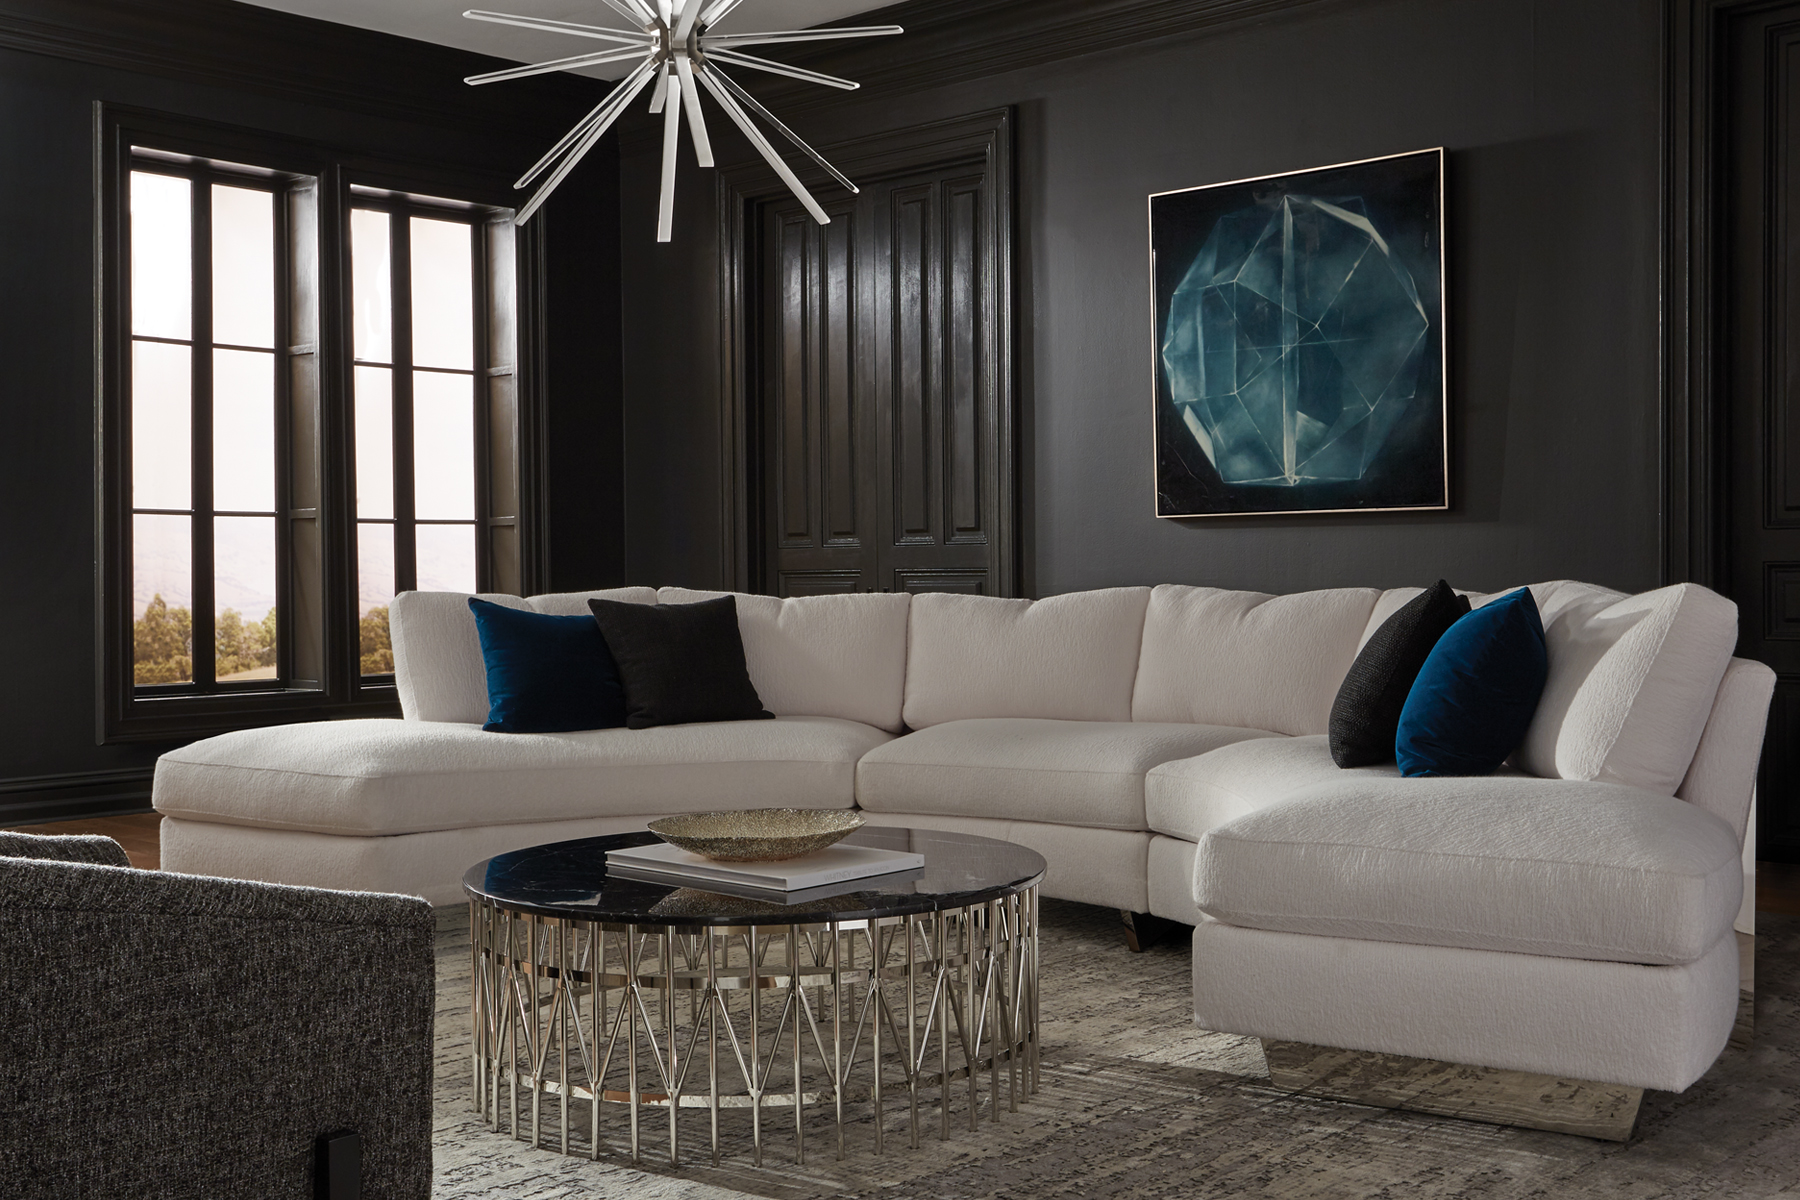 Cool Clip sectional from Thayer Coggin